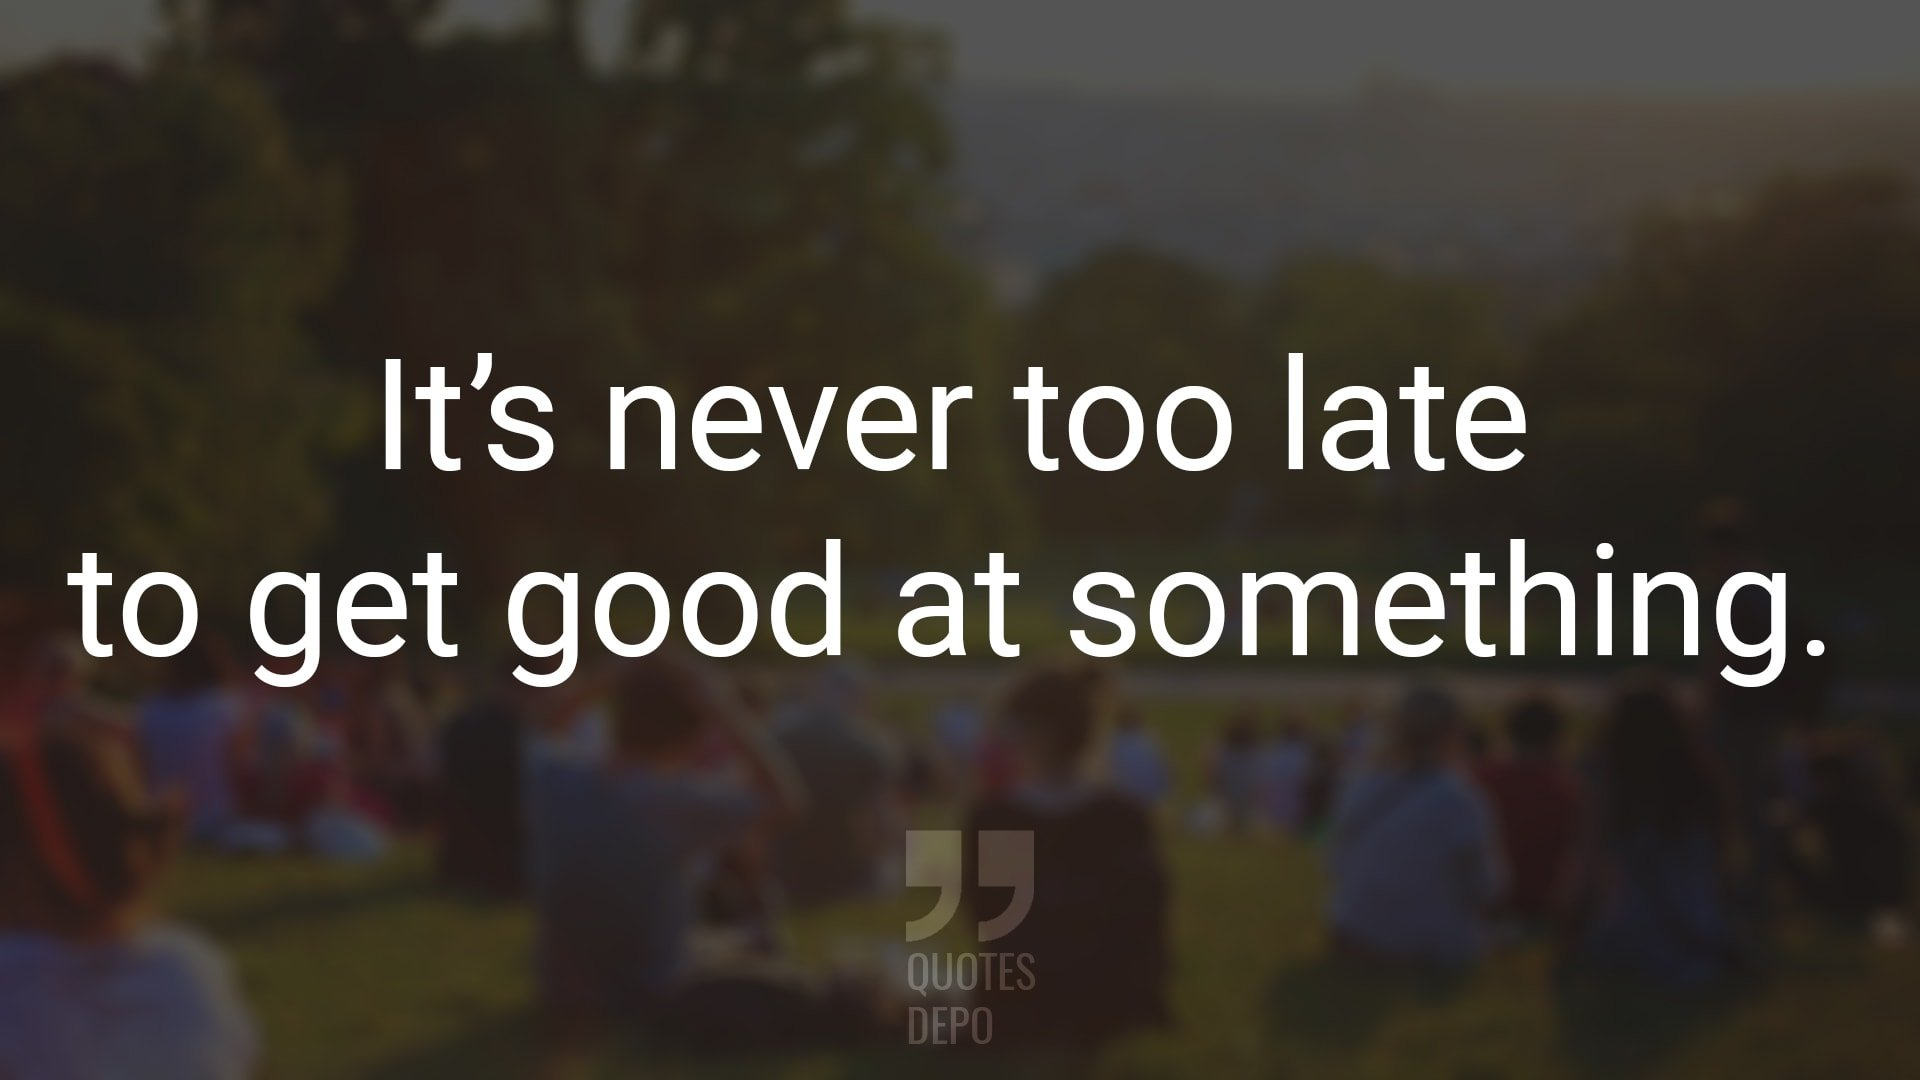 It's Never Too Late to Get Good at Something